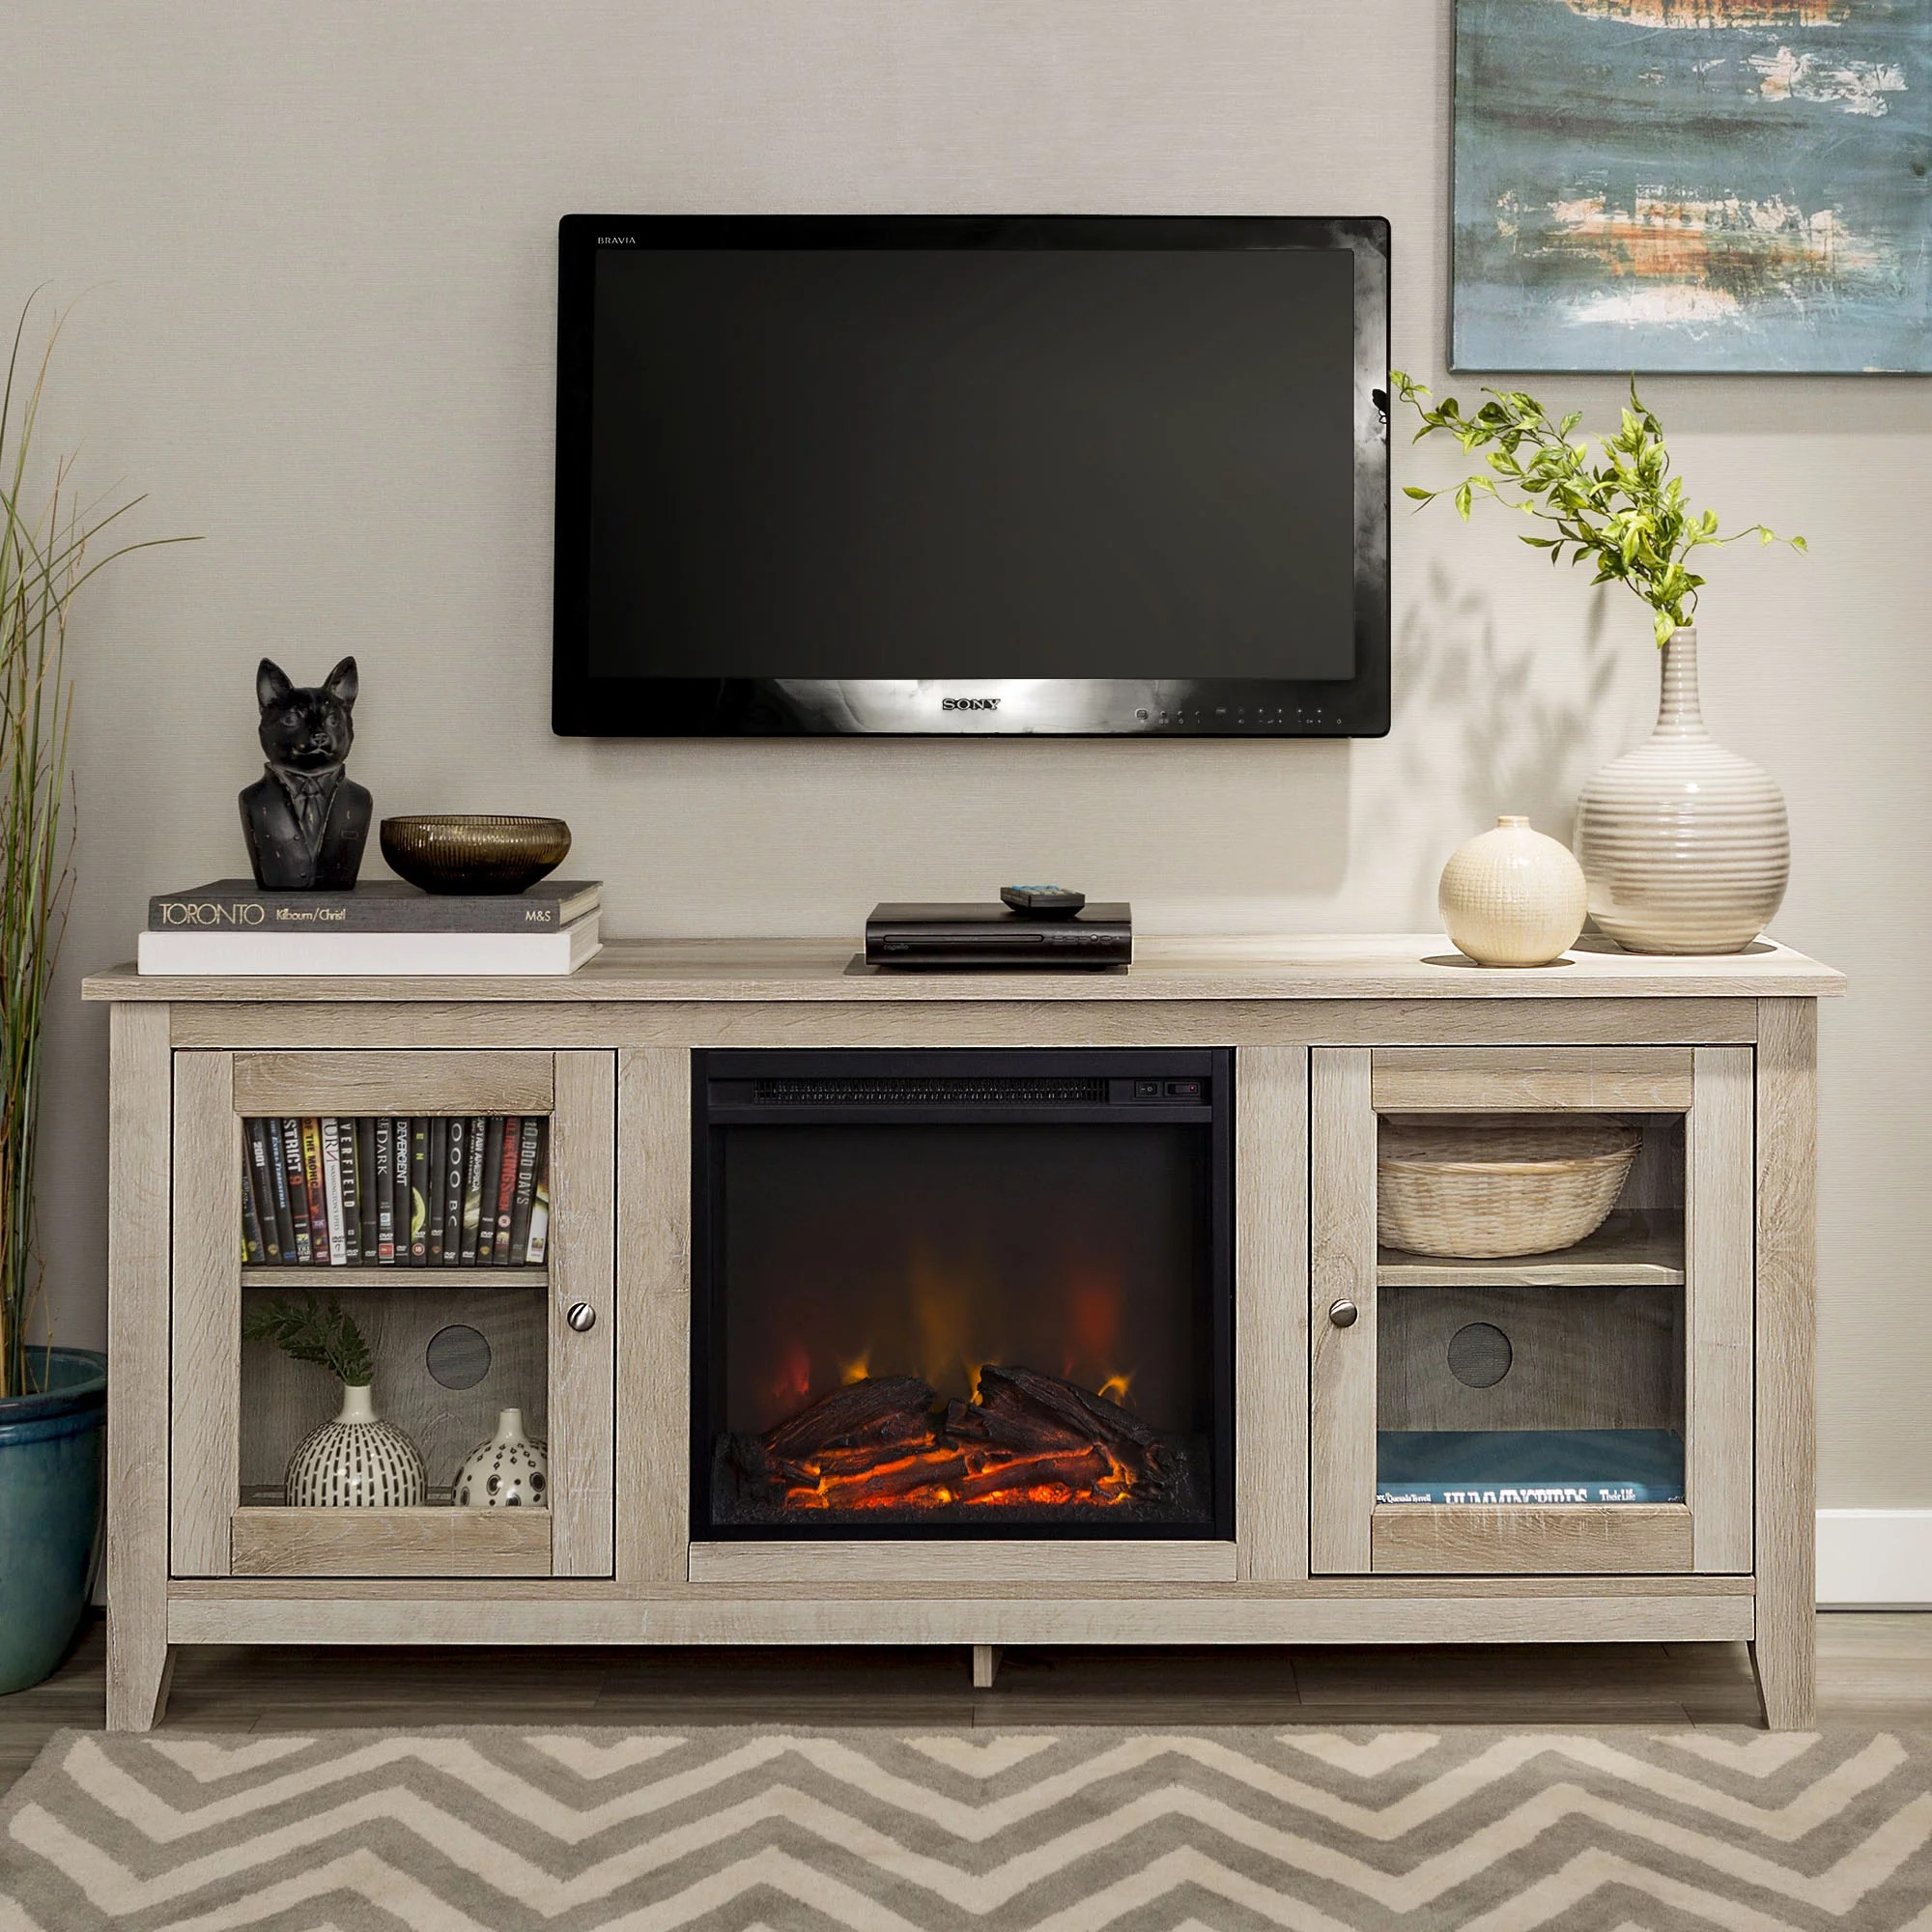 Fireplace Tv Combo Traditional Wood Fireplace Tv Stand For Tvs Up To 60